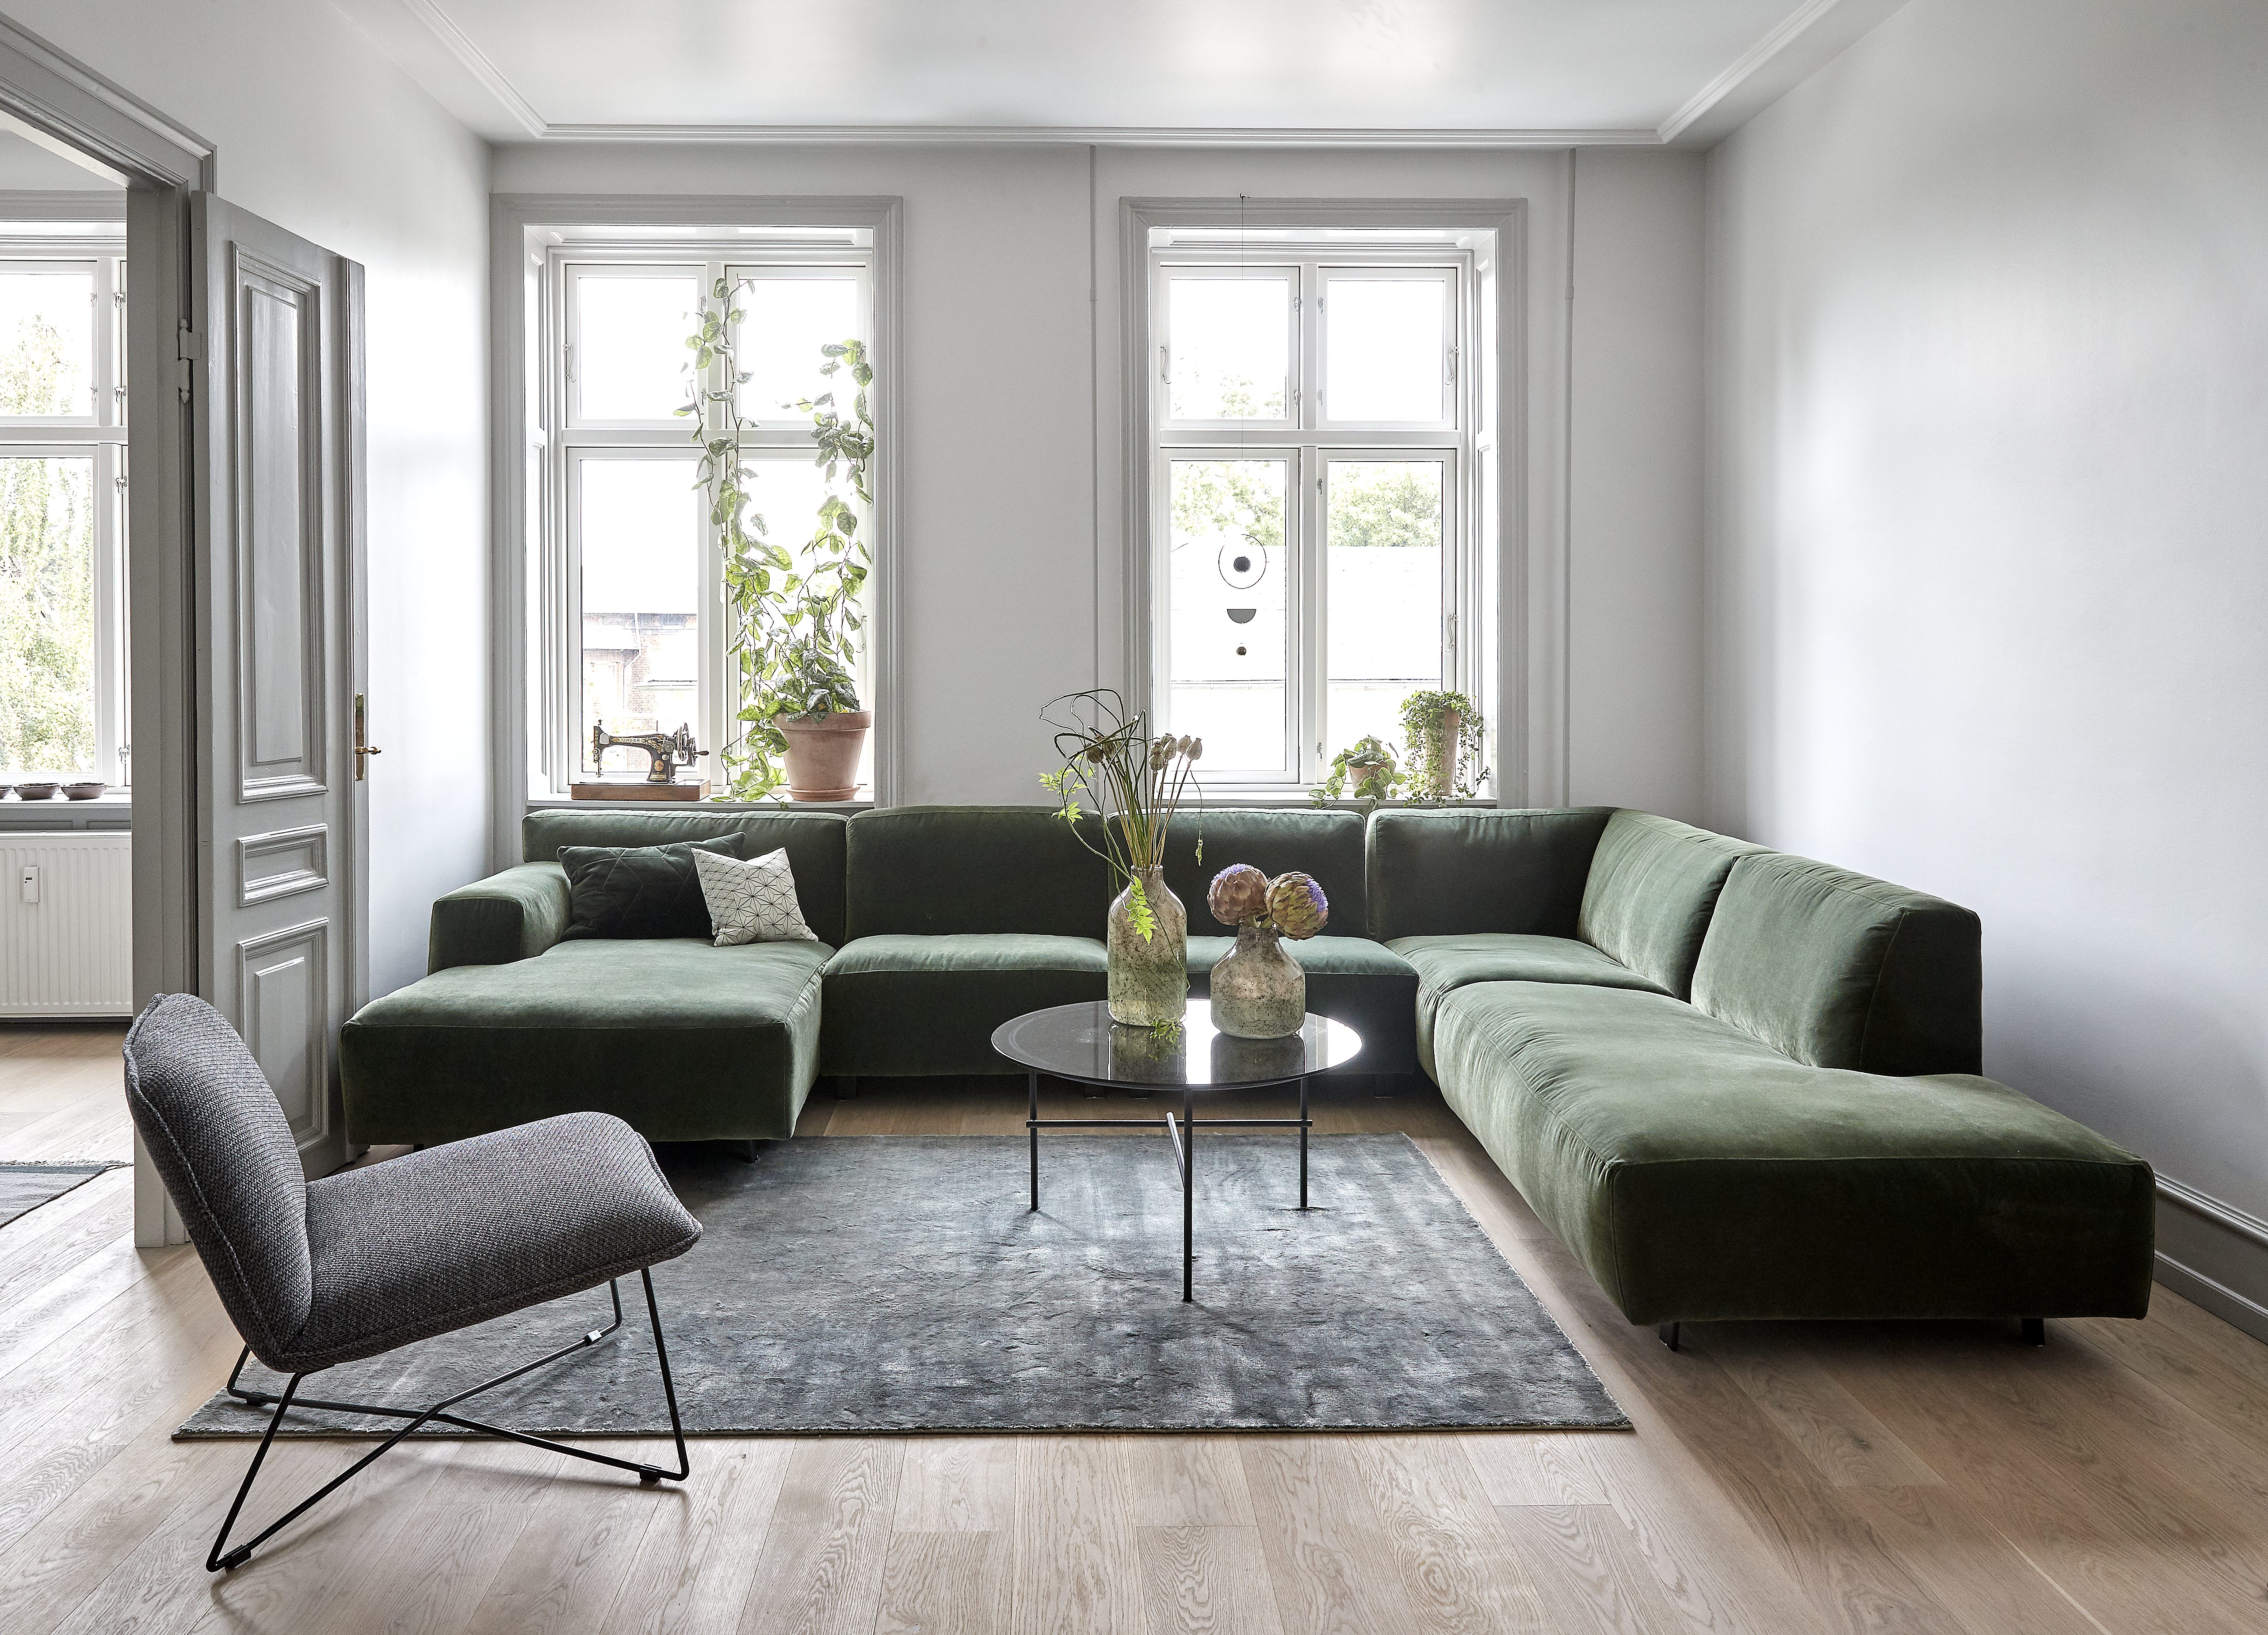 Picture of: Design Din Egen Sofa Hos Ilva Start Her Ilva Dk